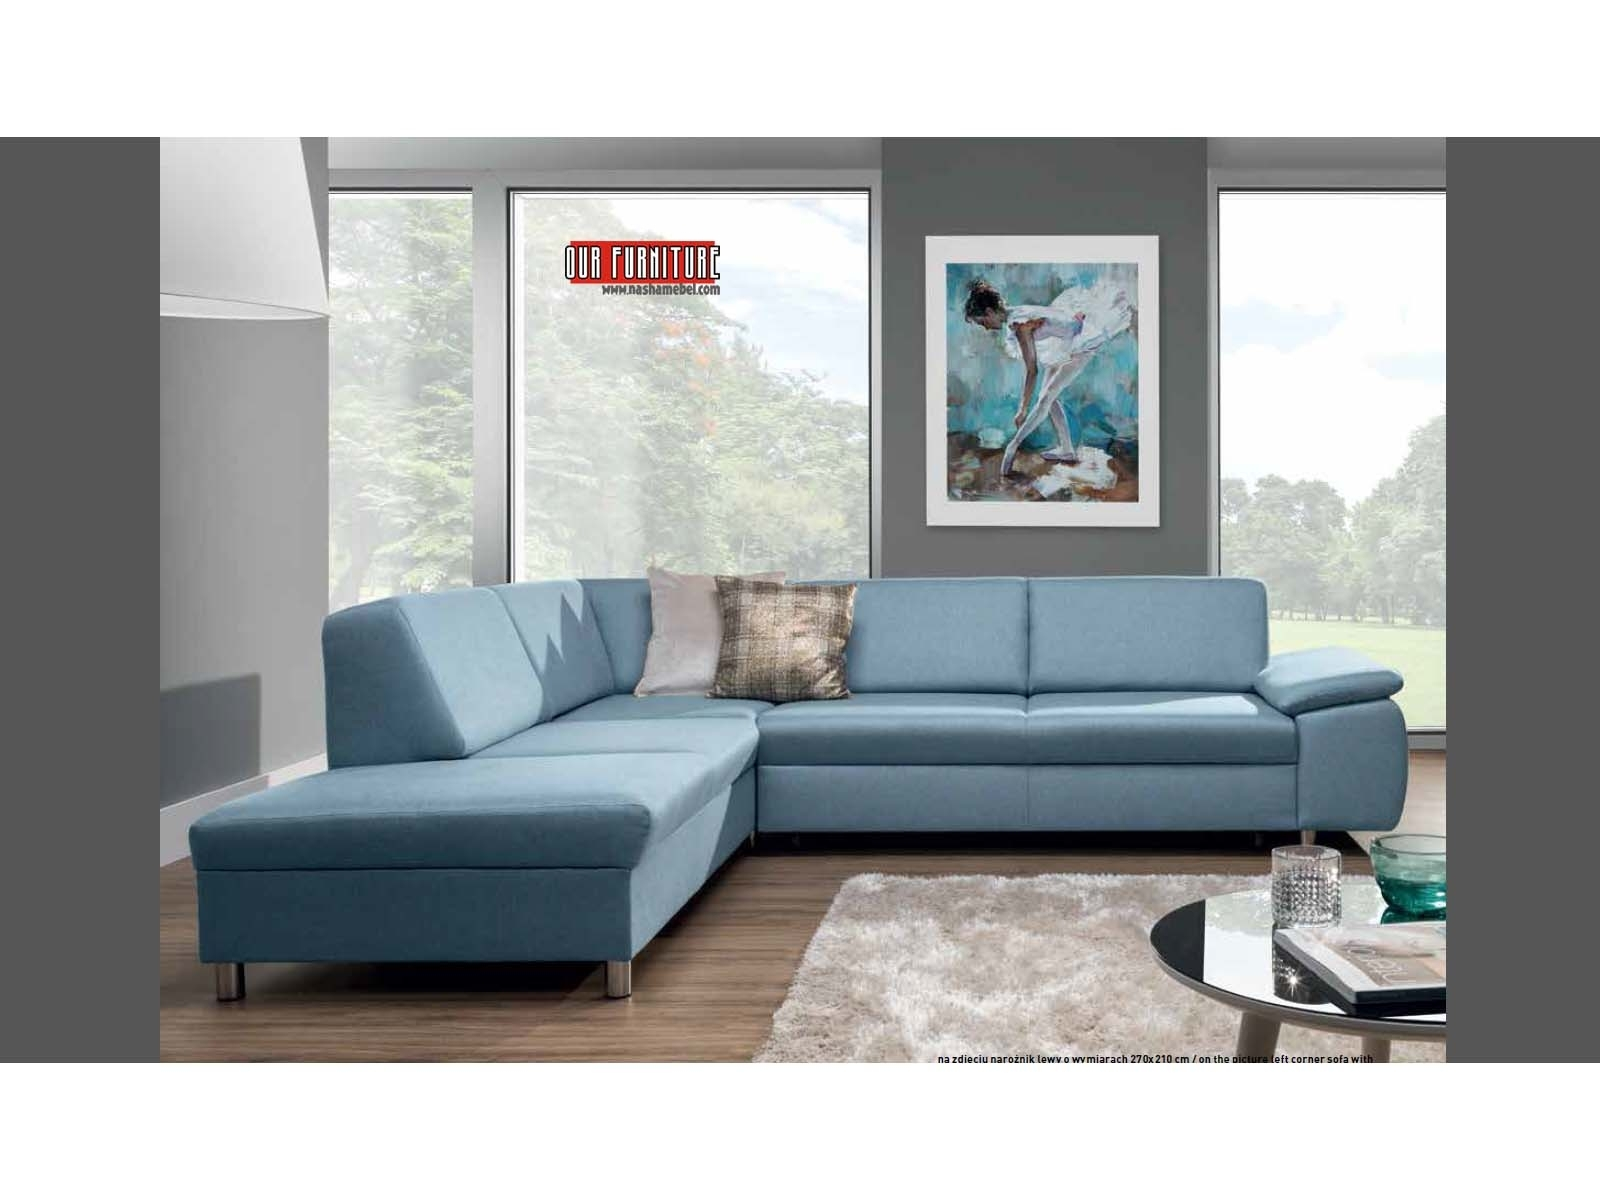 Niagara(St)Sectional Sofa Bed. Throughout Niagara Sectional Sofas (Photo 5 of 10)